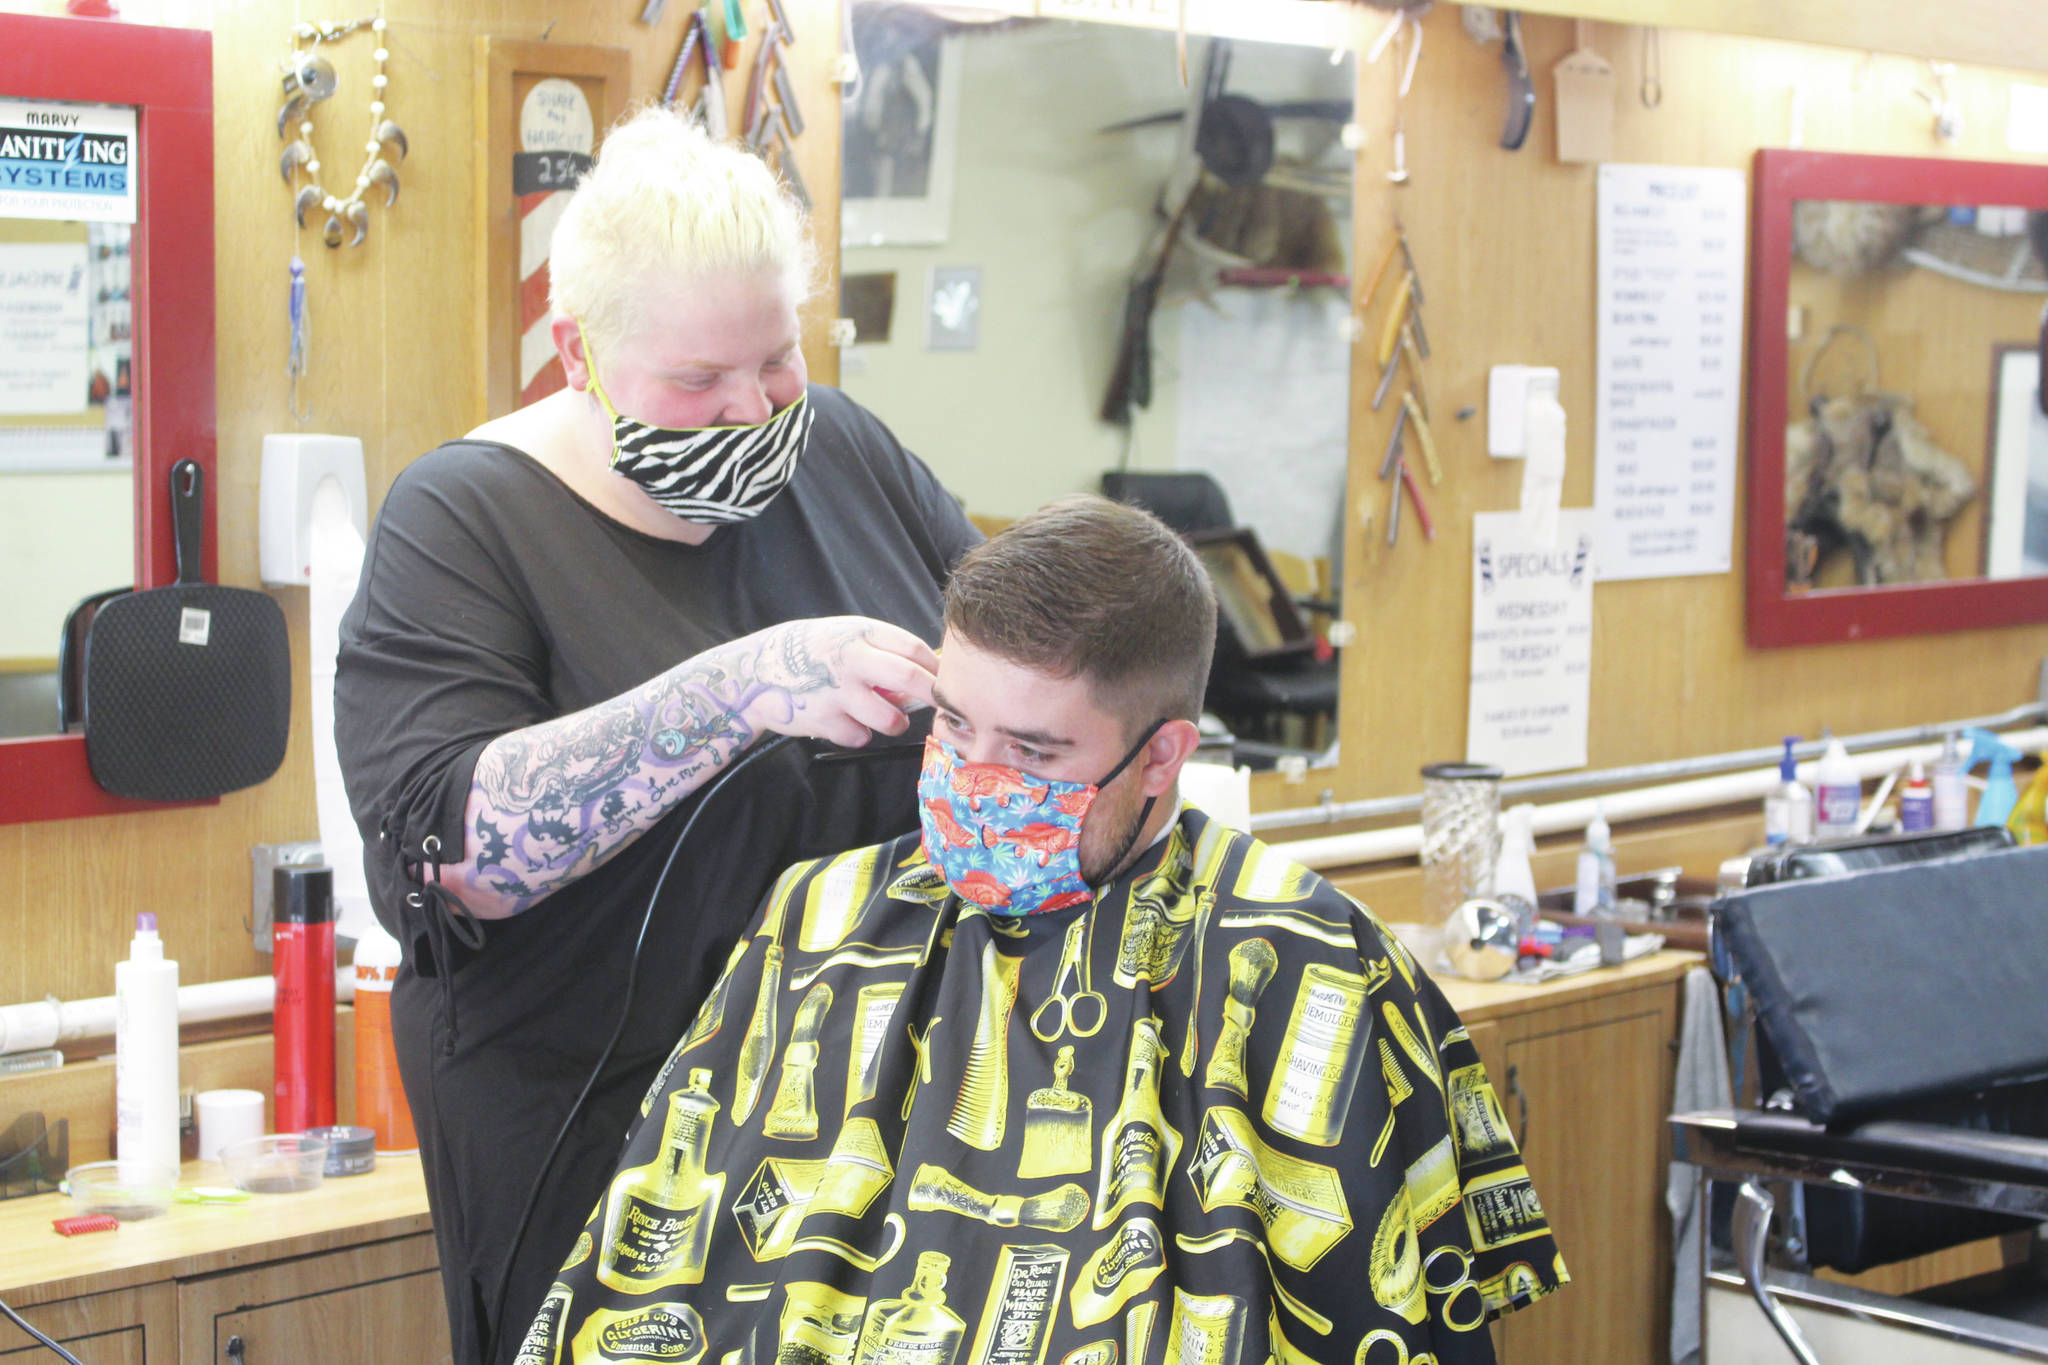 Photo by Brian Mazurek/Peninsula Clarion                                Skylar Giordano cuts Ryan Huerta's hair at RD's Barber Shop in Kena on Thursday. RD's is one of the 186 local businesses and nonprofits in Kenai that already received financial assistance through the City of Kenai's Grant Program.